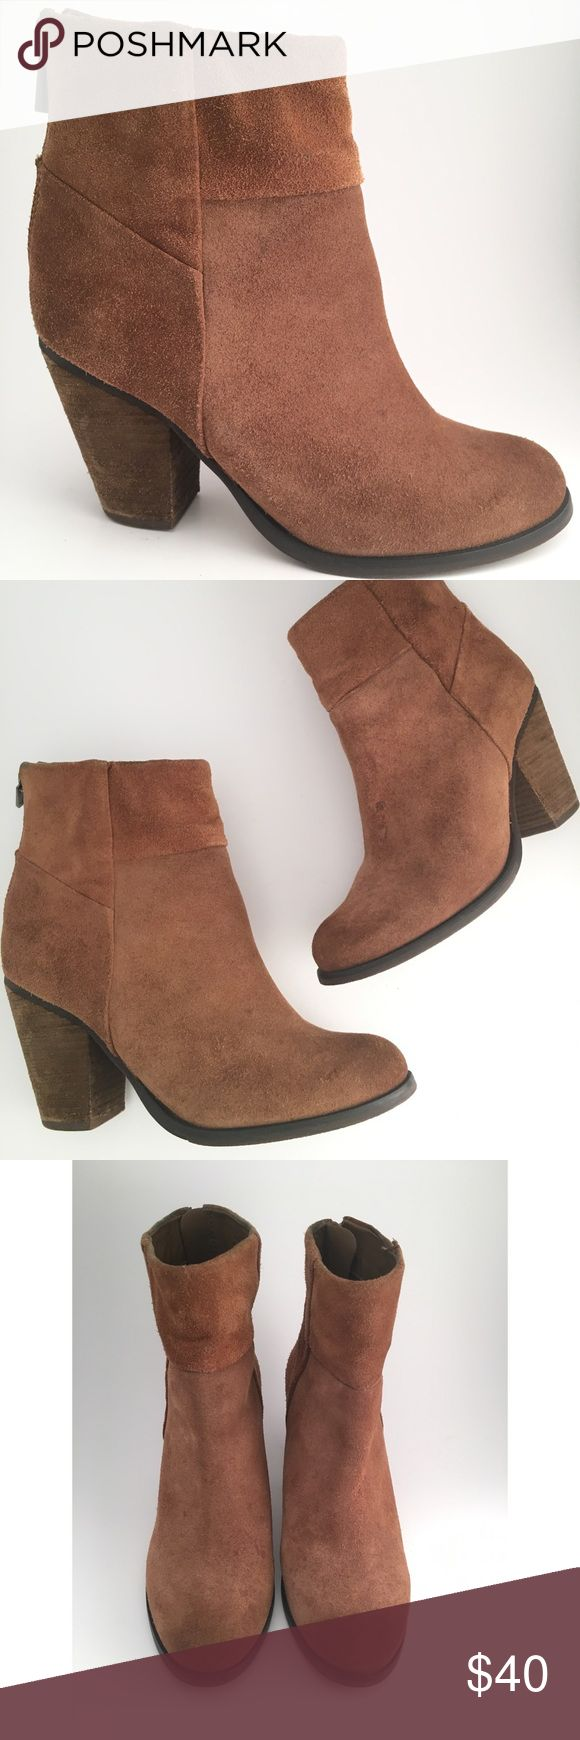 """Arturo Chiang Leather Suede 'Hadley' Booties ✨💞✨ Stylish & Pretty Booties by Arturo Chiang ✨💞✨  Size •  6.5  Heel Height • 3.25"""" Width • M  Style Name • Hadley  Style Boot • Round Toe Booties   🎇Note>>>>Condition. Pre-Owed. Some little wear the bottom. Other than that in Excellent Condition.   New Item posted 2/23/18 ✨ 💖All photos are taken by us.  📸 Exact item for Sale.  👉No Trades 🚫No Low-Balling Arturo Chiang Shoes Ankle Boots & Booties"""